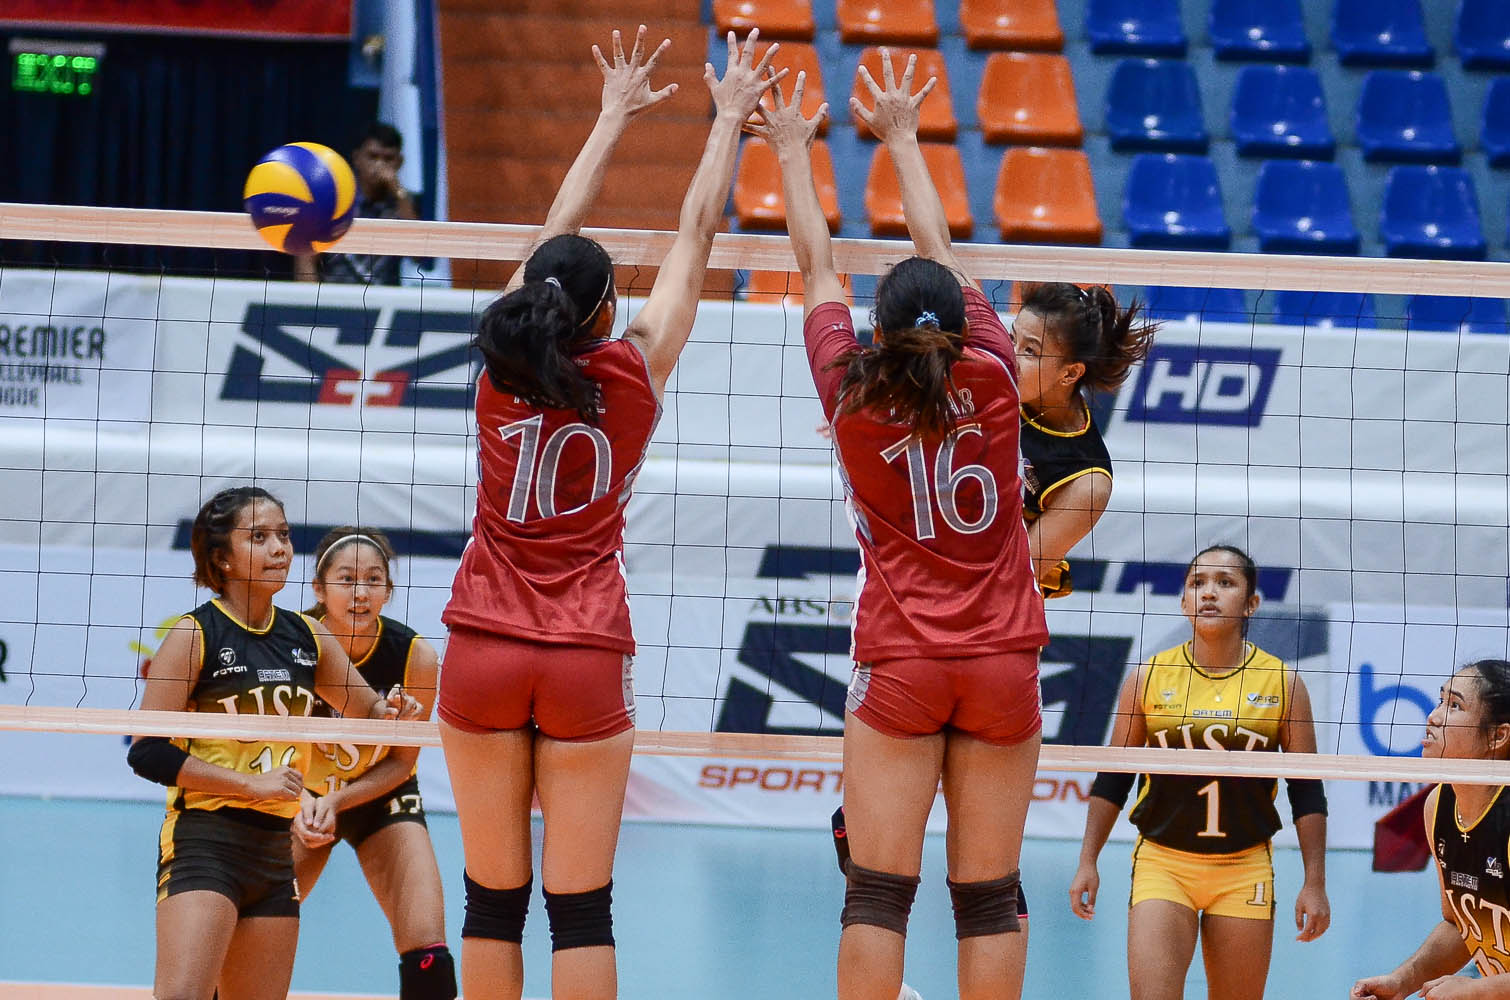 Tiebreaker Times Ej Laure victorious in return as UST Tigresses make quick work of Lyceum LPU News PVL UST Volleyball  UST Women's Volleyball Mary Joy Onofre Lyceum Women's Volleyball Kungfu Reyes Janna Torres Imee Hernandez Emil Lontoc EJ Laure 2019 PVL Season 2019 PVL Collegiate Conference